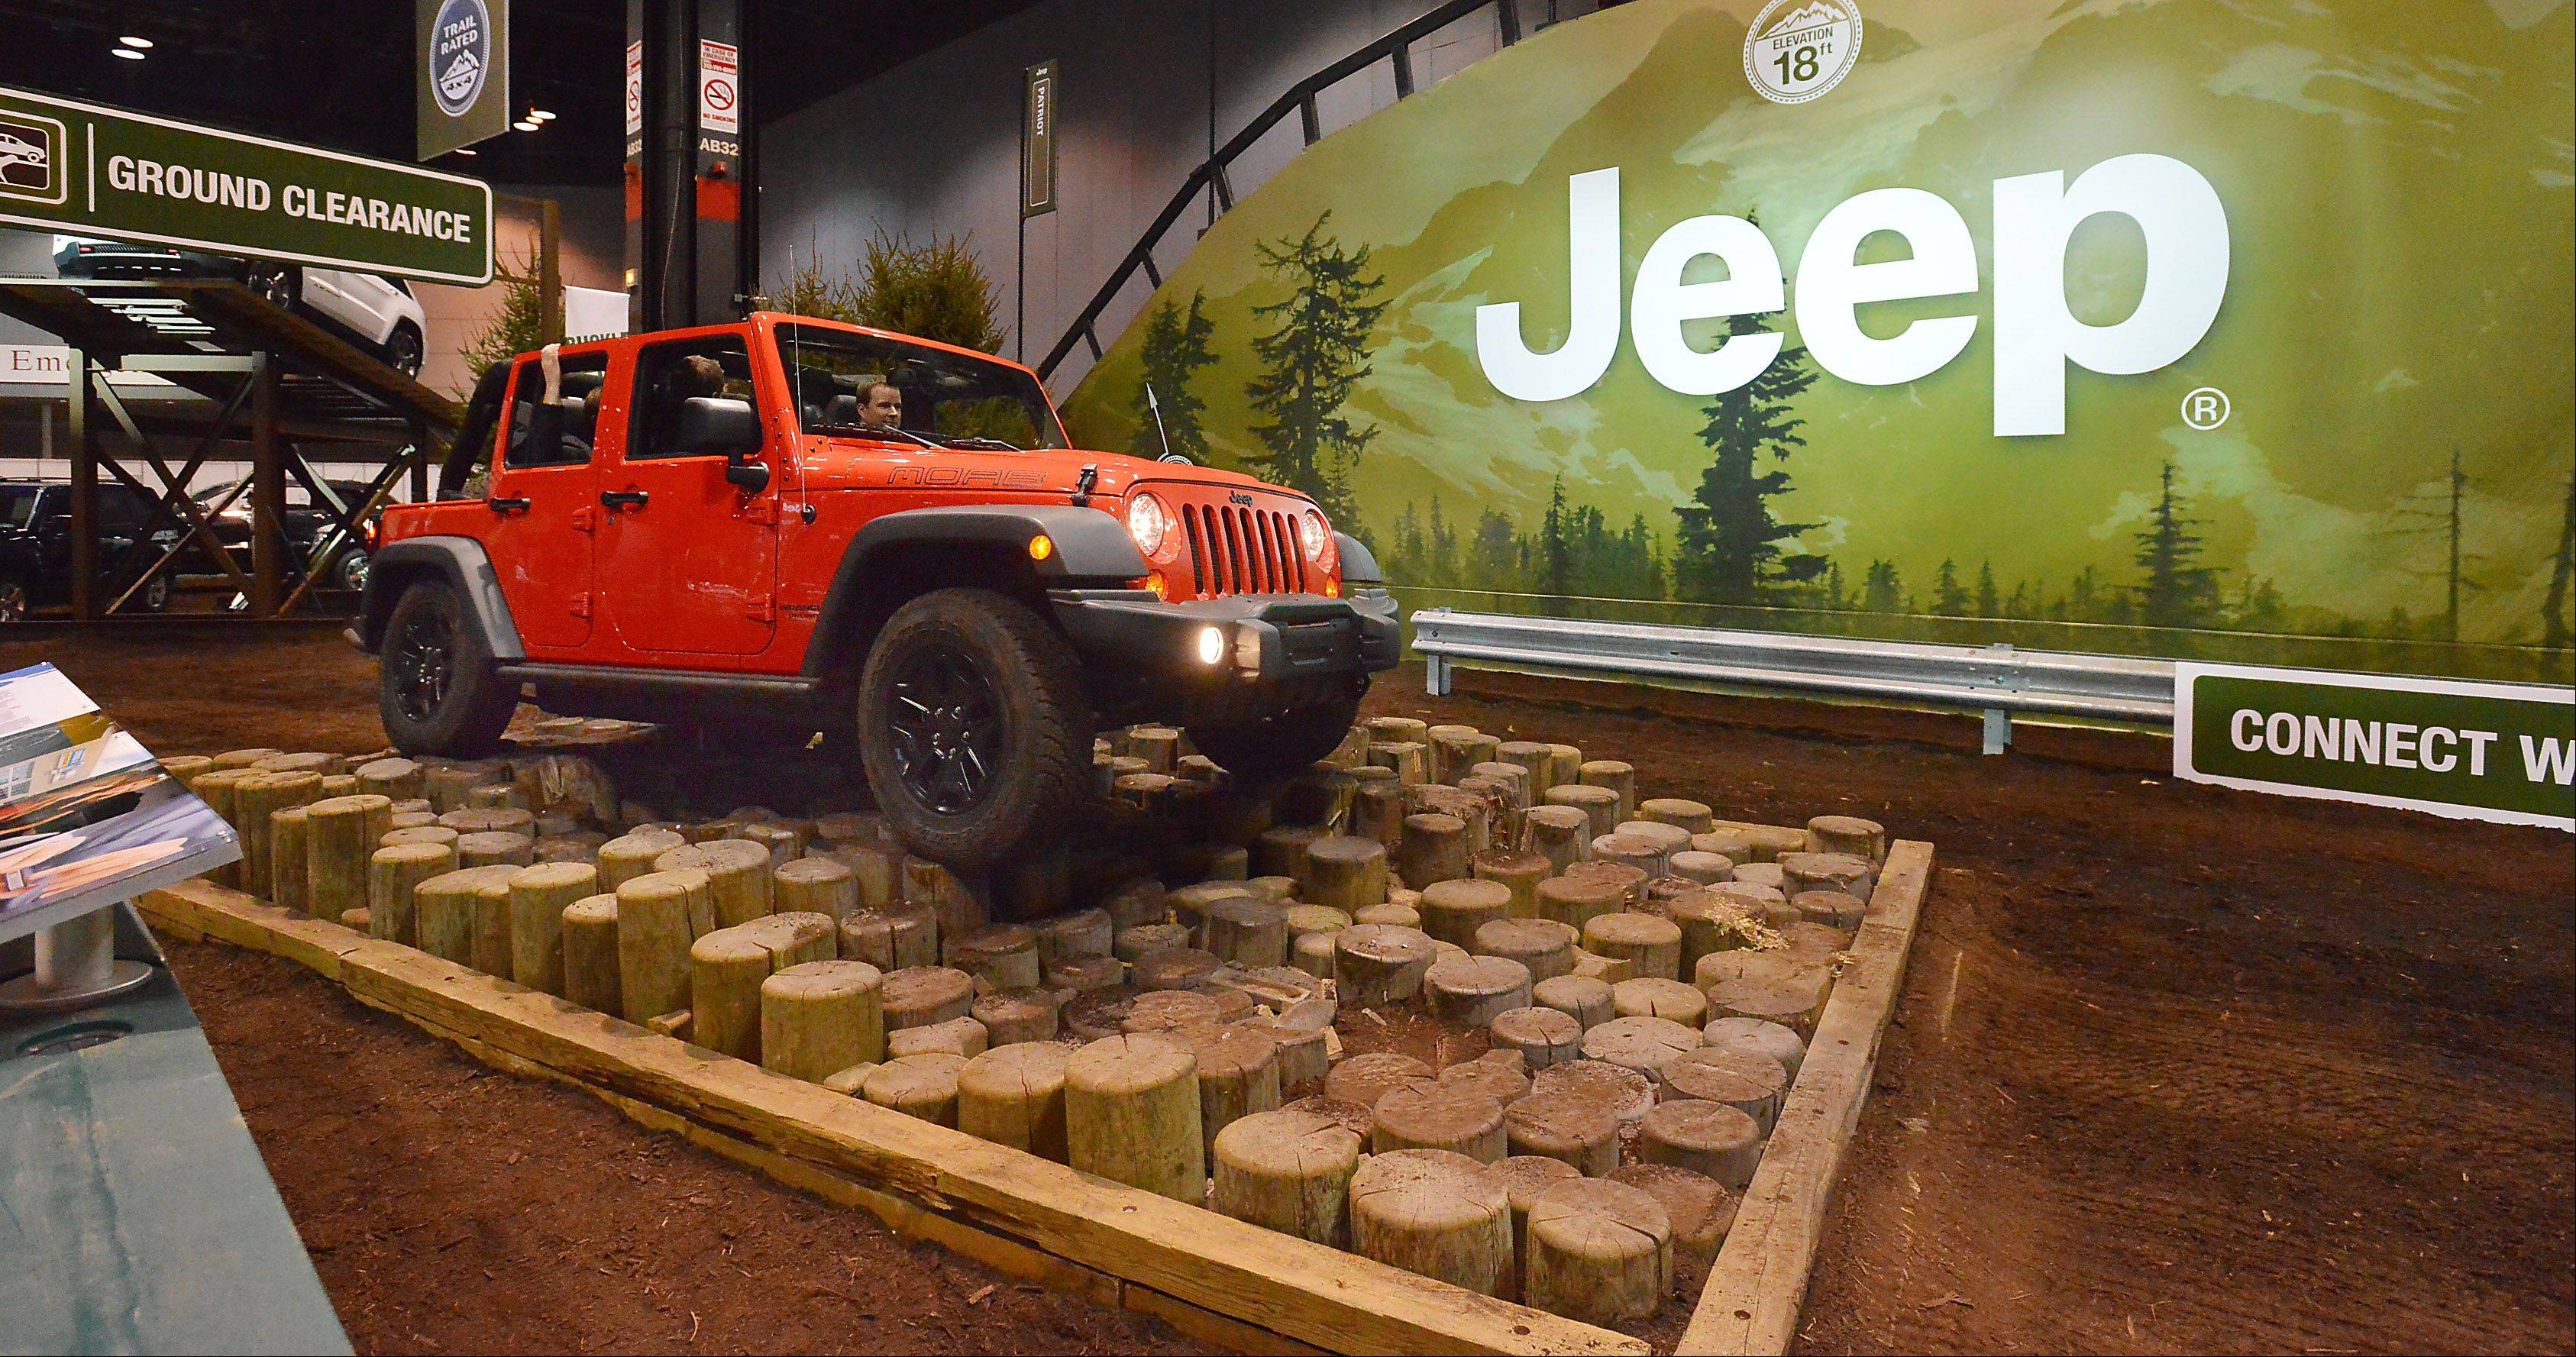 Visitors' driving skills can be tested at the Jeep obstacle course.